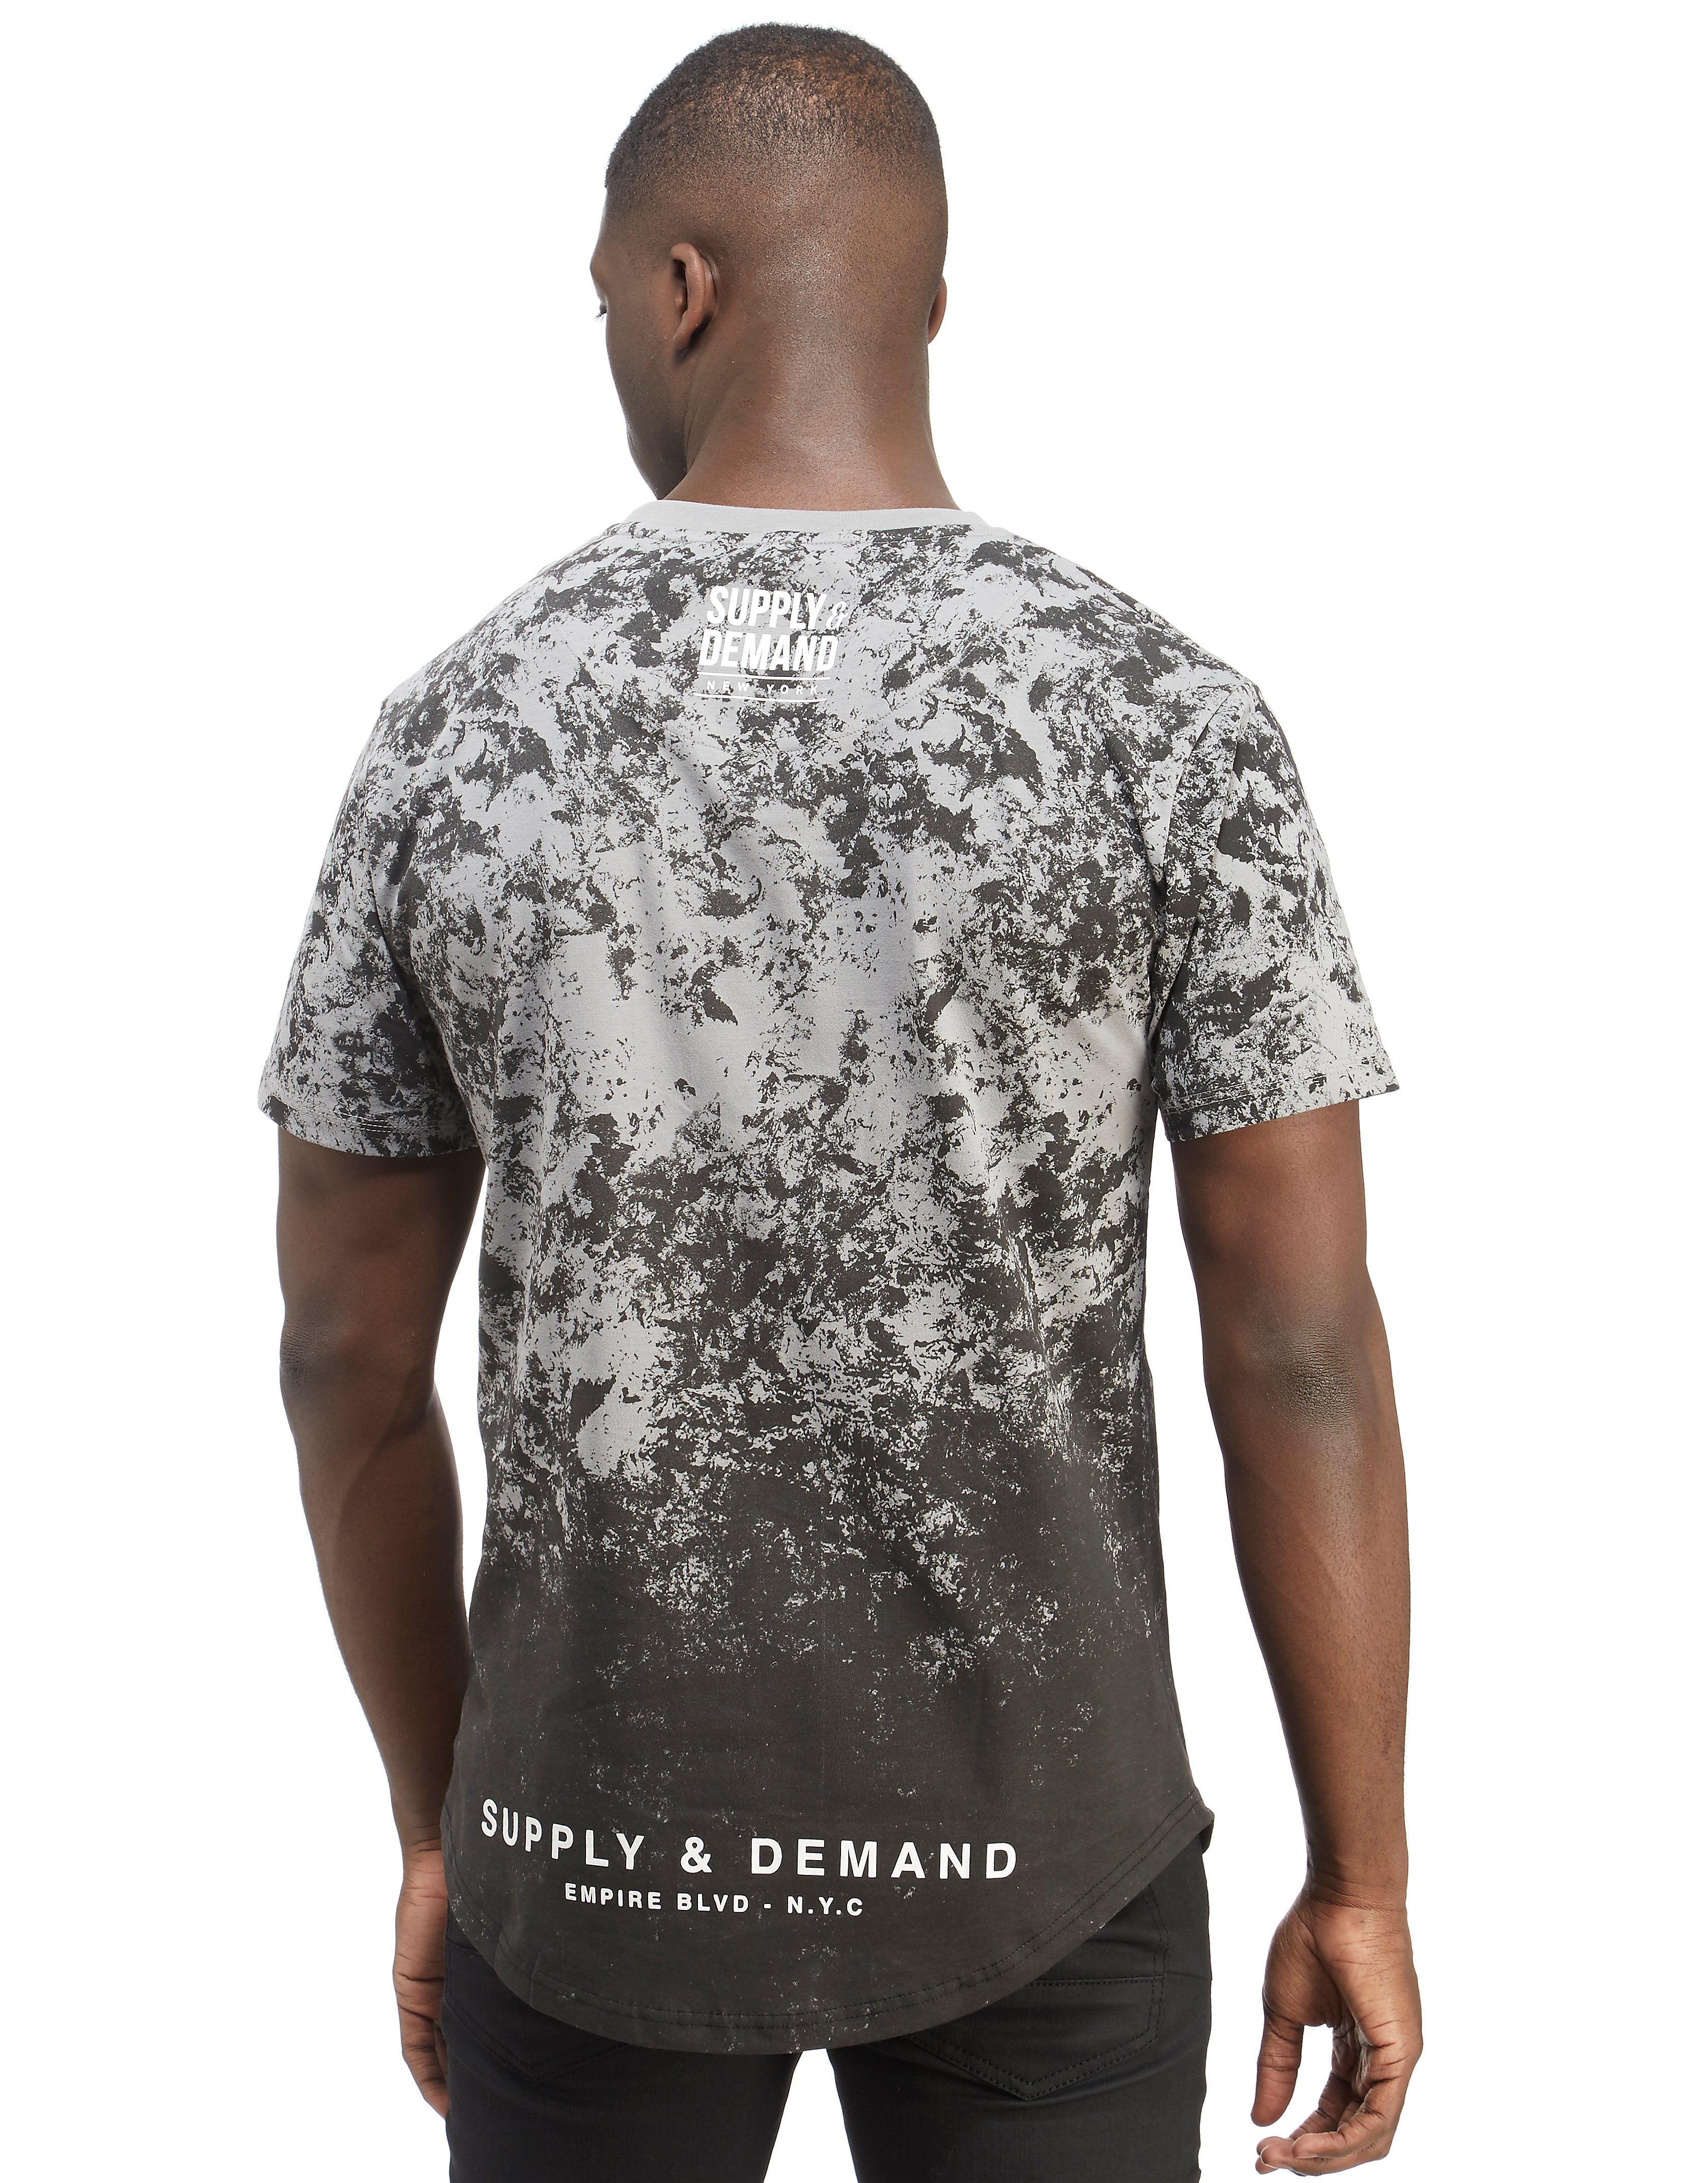 Supply & Demand Grunge T-Shirt